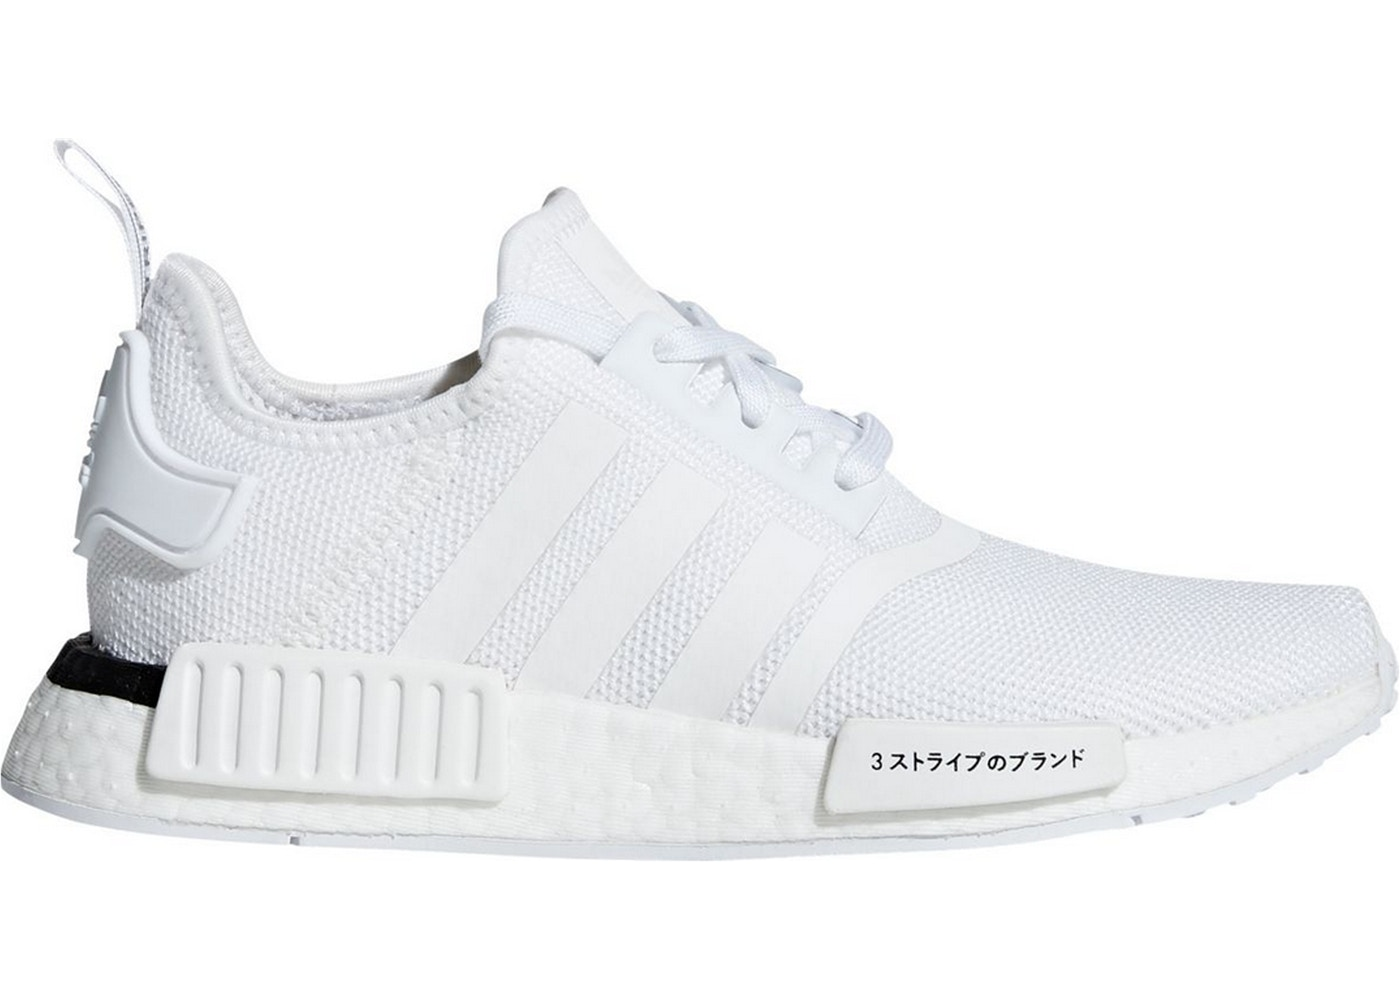 finest selection dcf73 c5a70 adidas NMD Shoes - Release Date